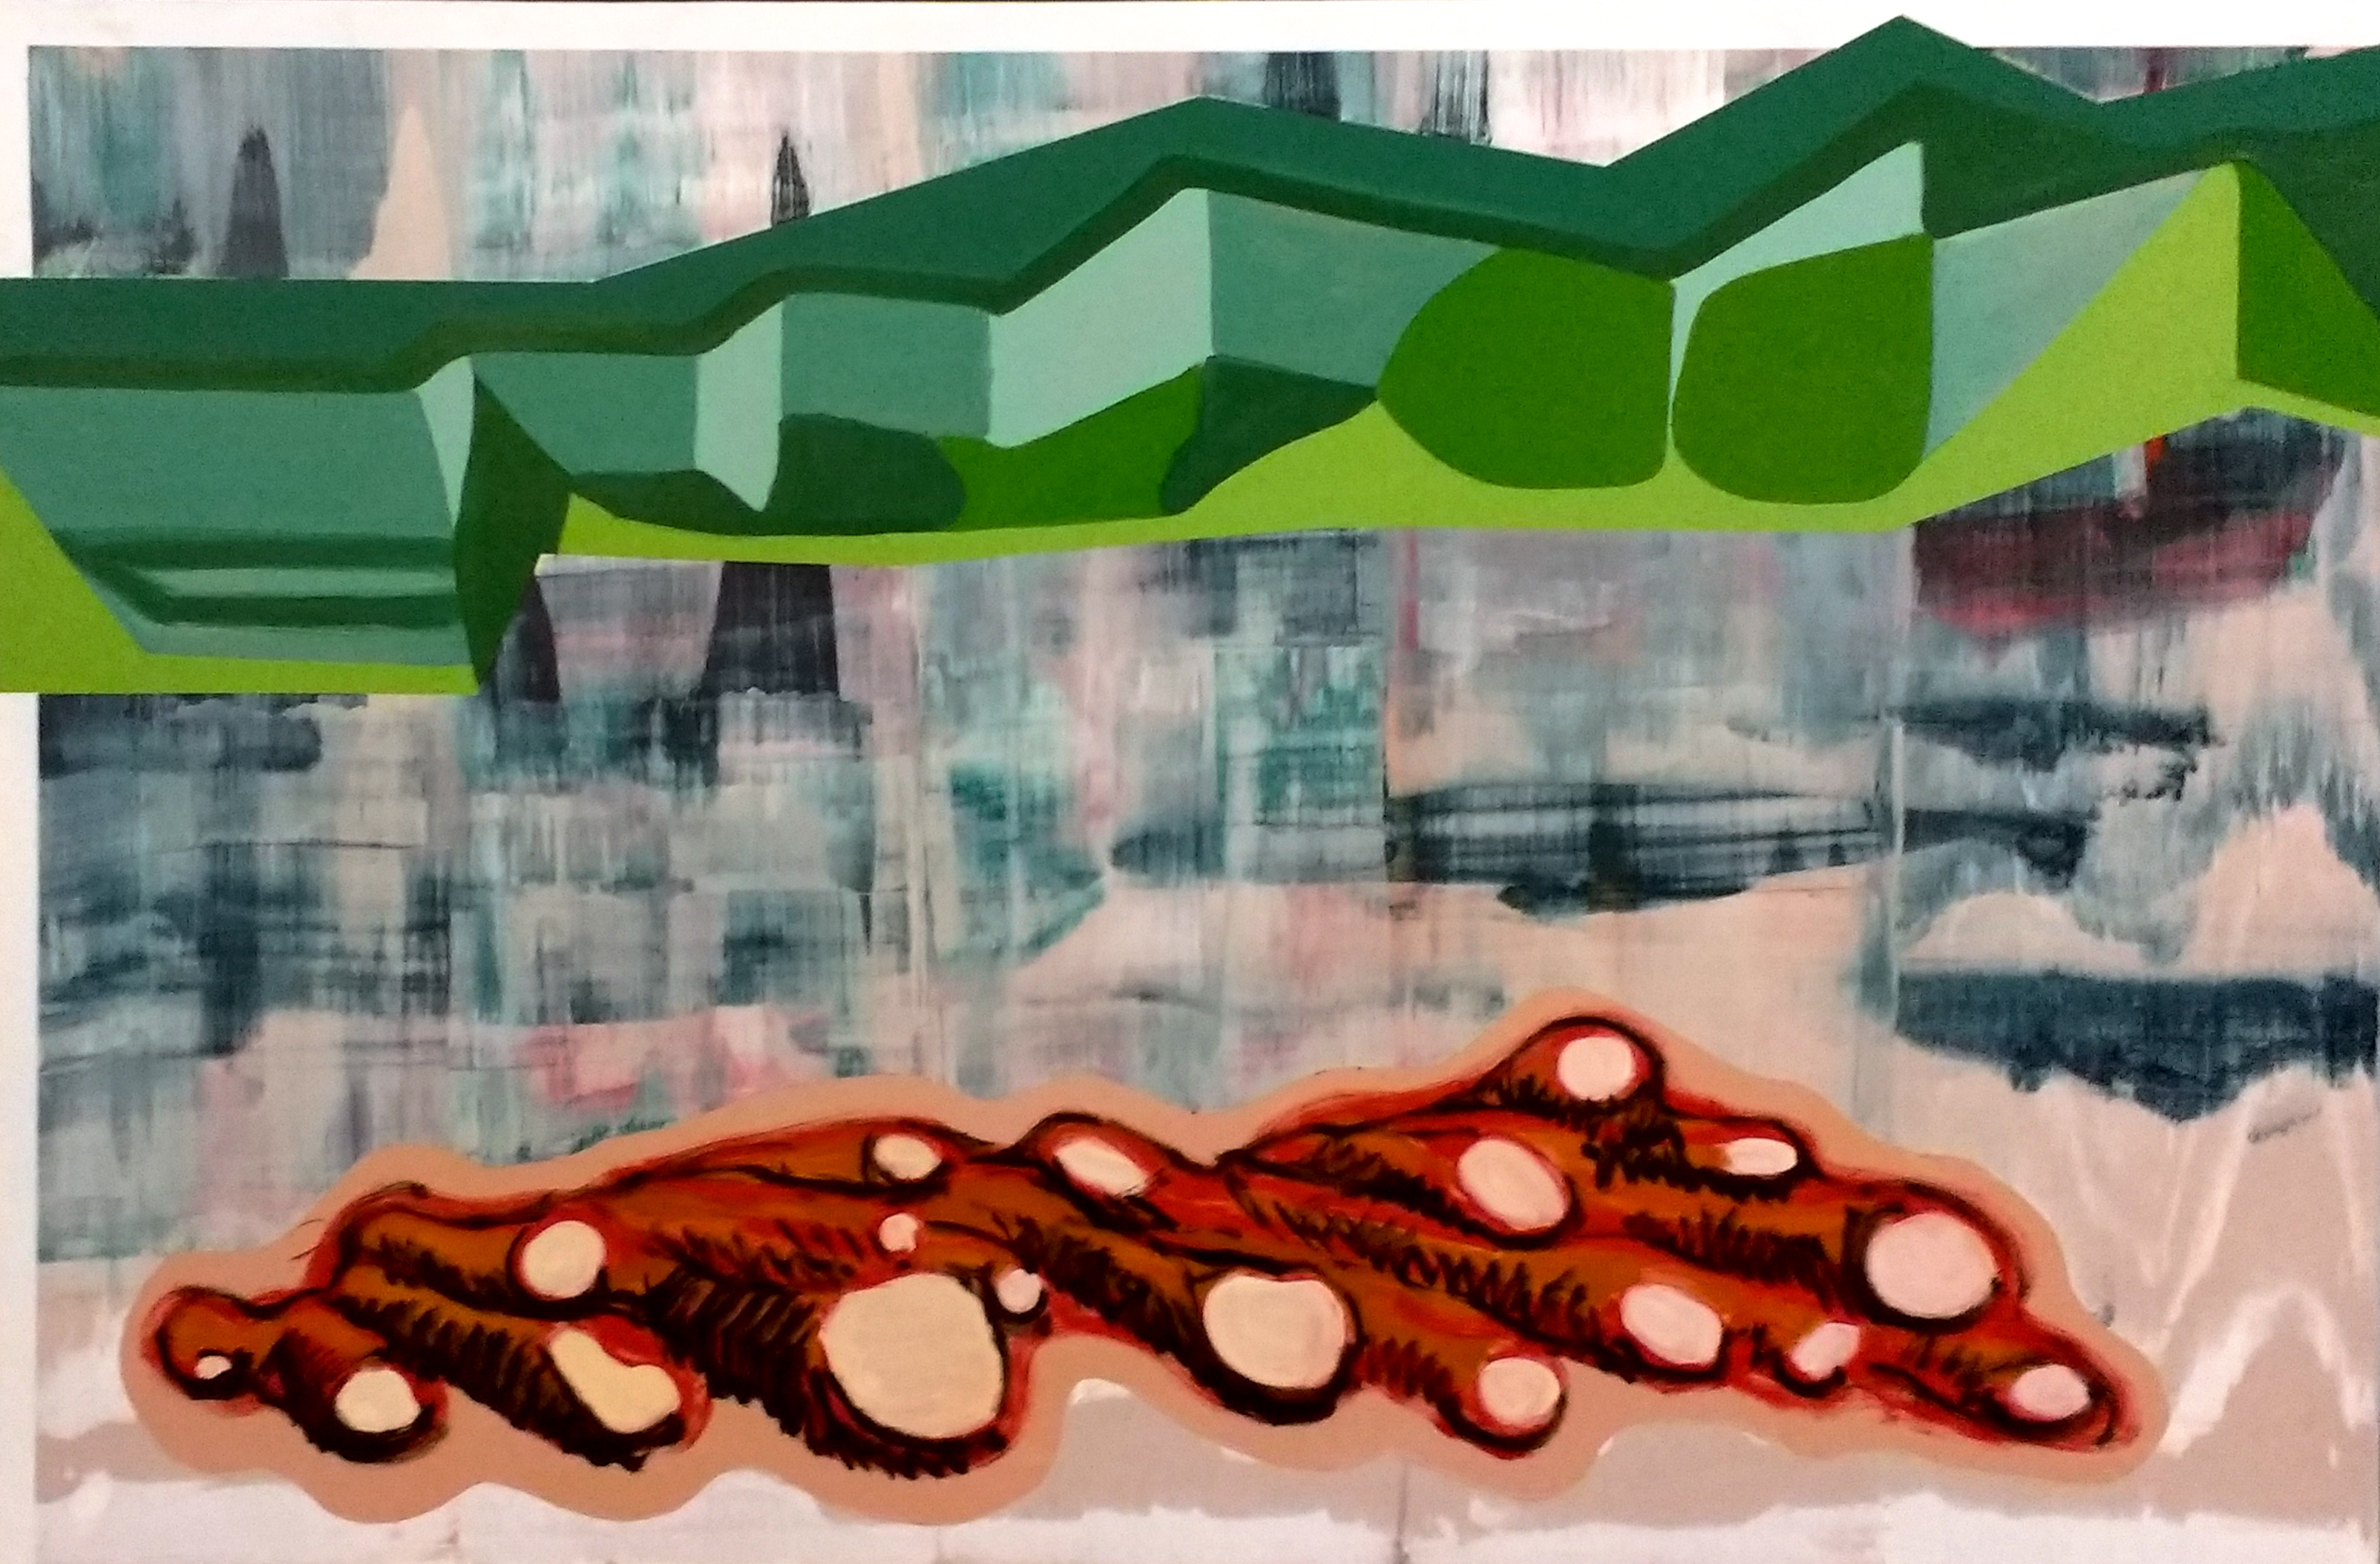 Slippage 7, Oil and acrylic on canvas